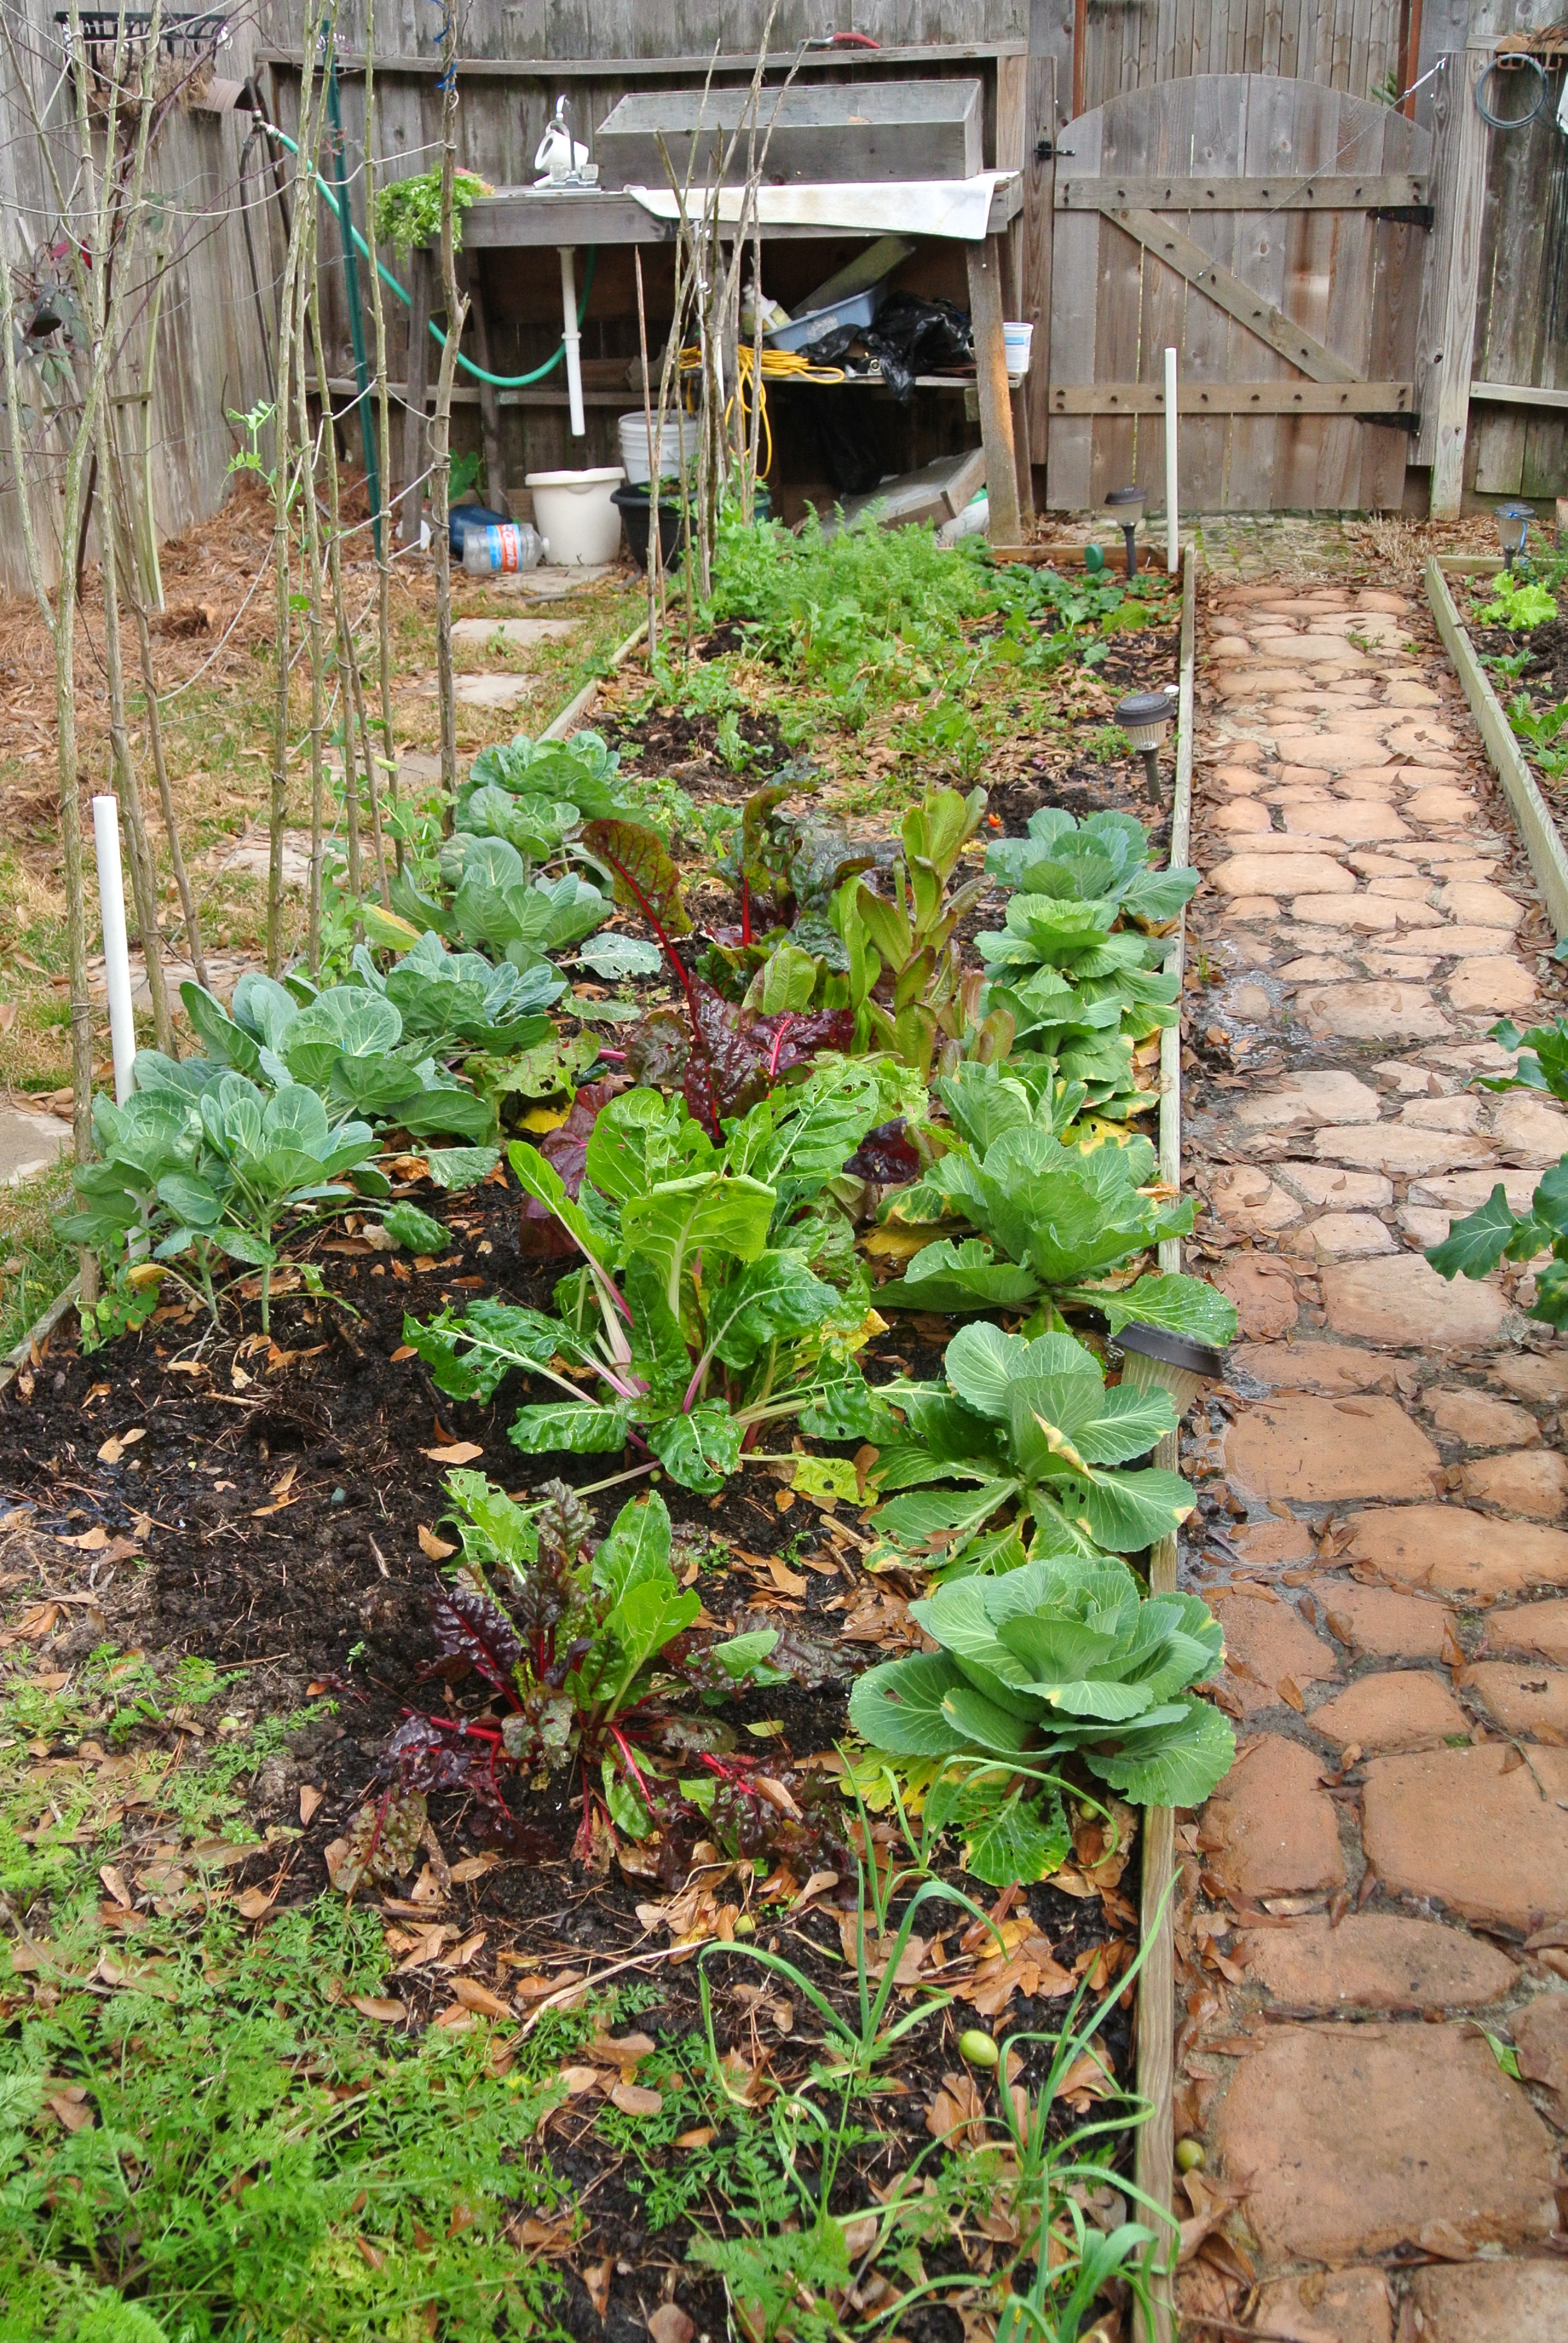 A view down my newest bed...redone a year ago.Lettuce, Chard, cabbage, peas, carrots, brussel sprouts, turnips, garlic and a few beets.